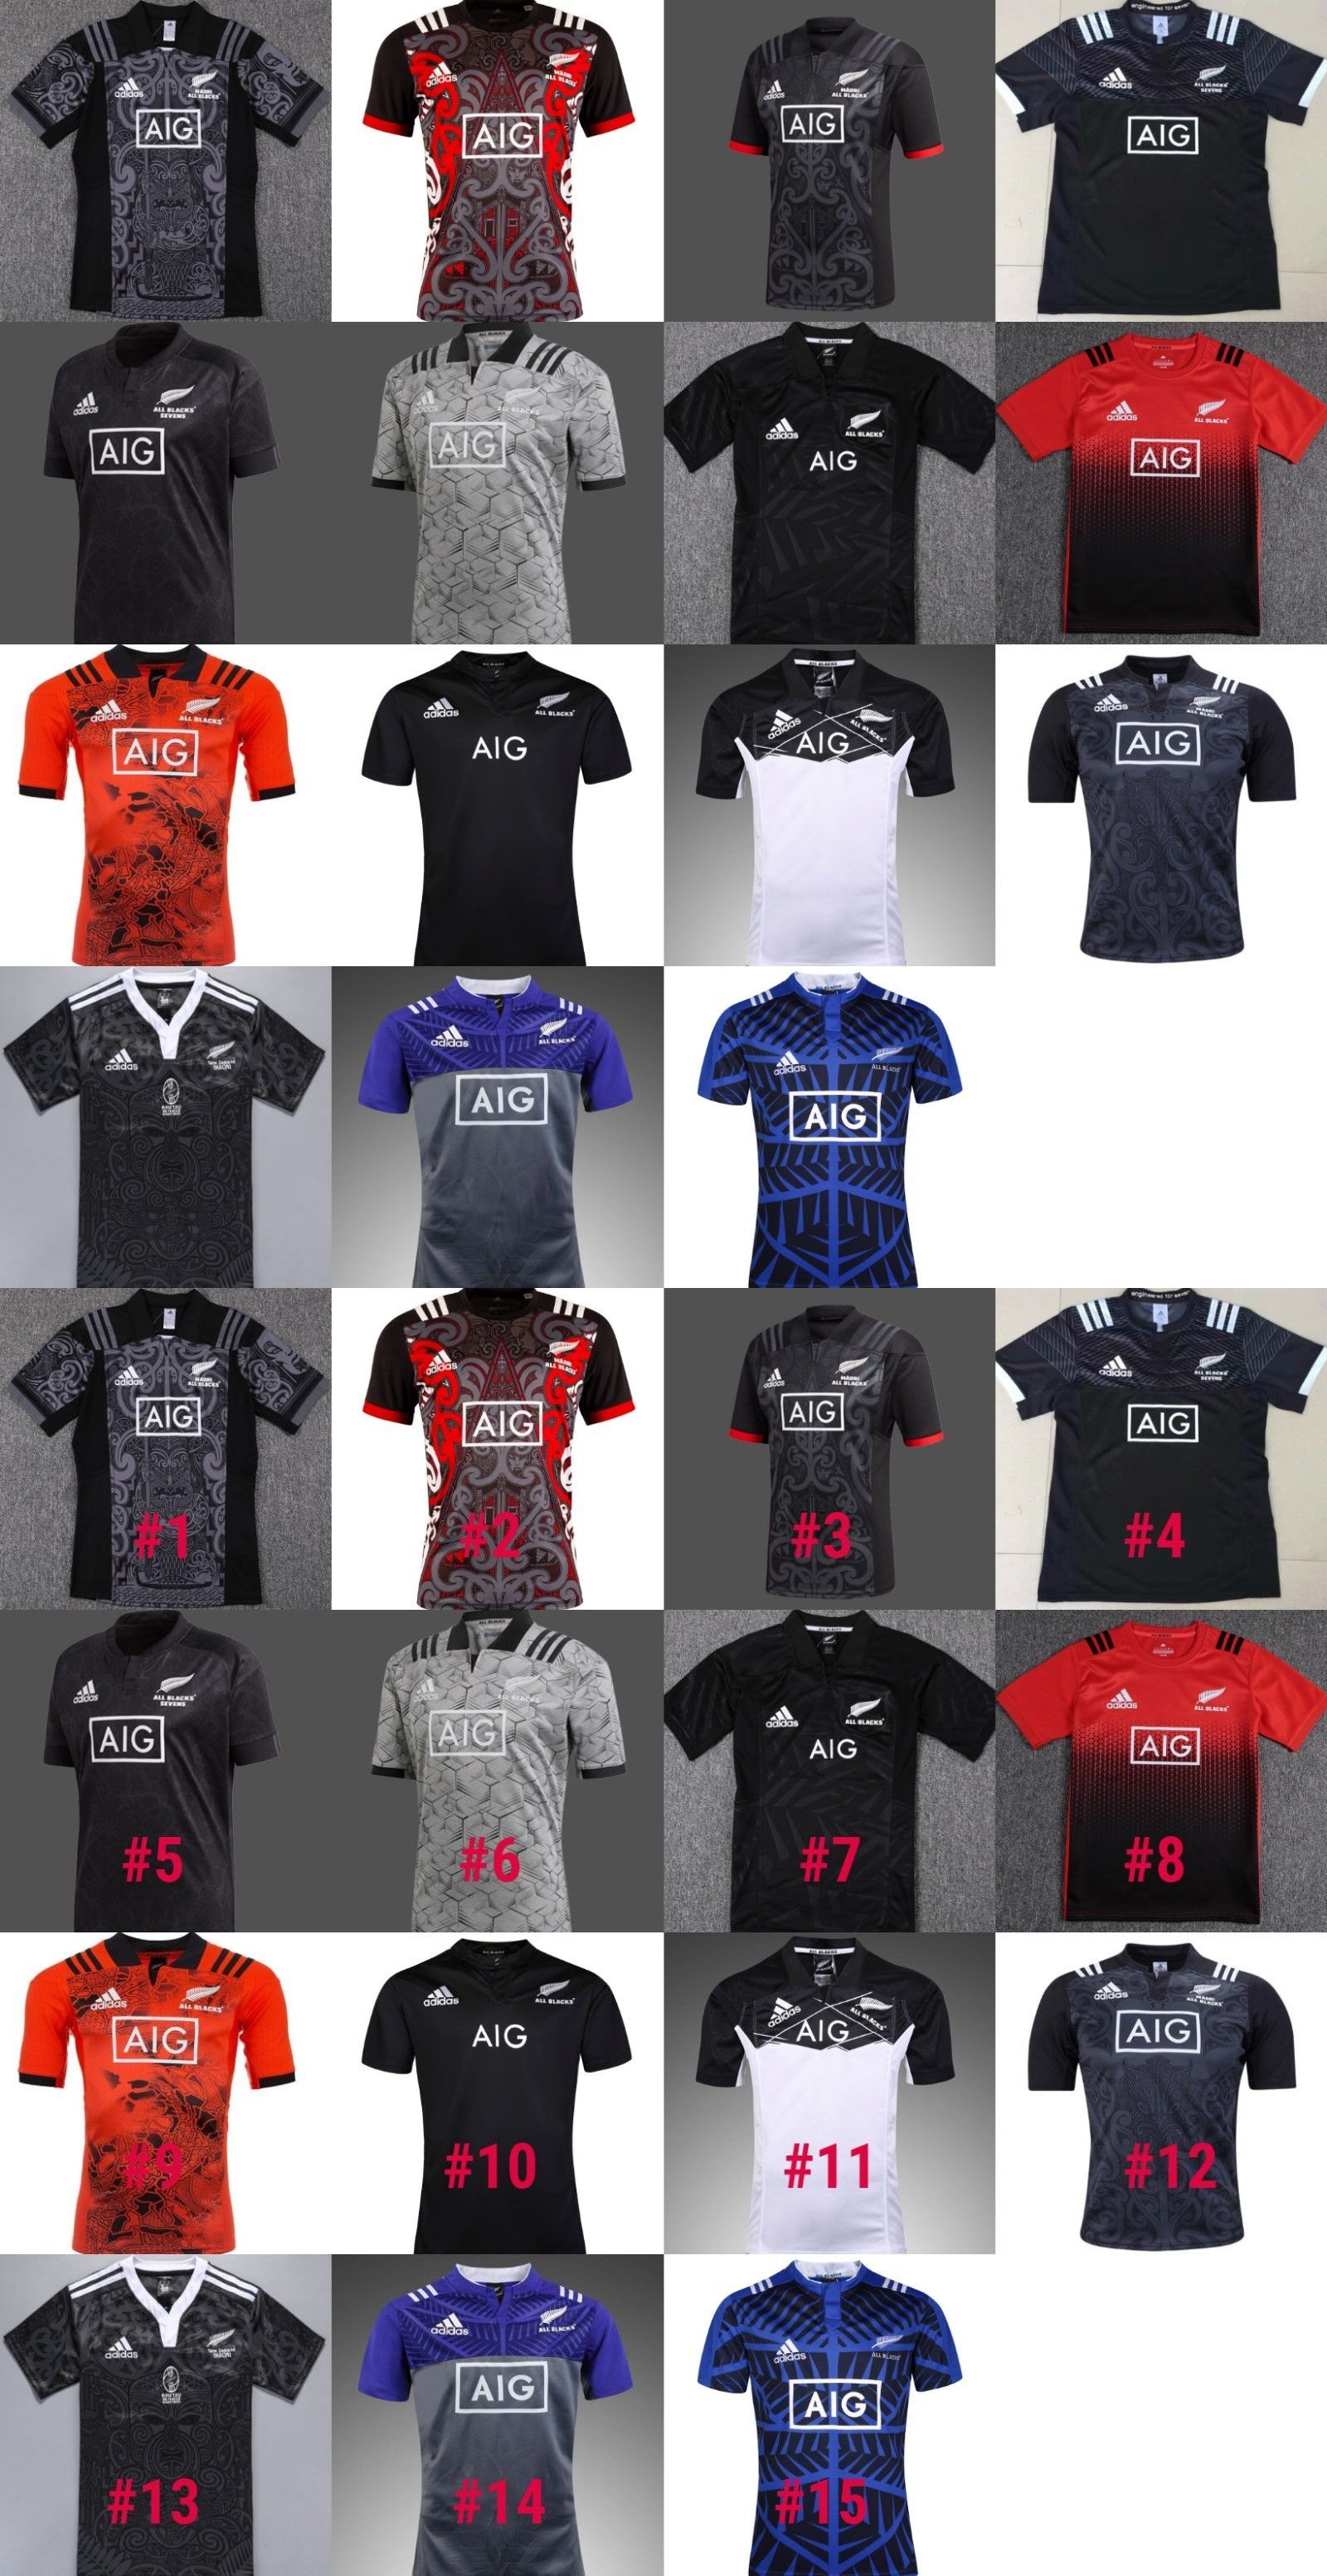 bf9a8ff7b Rugby 21563  New Zealand Maori All Blacks 2016-2019 Rugby Jersey Shirt 15  Models